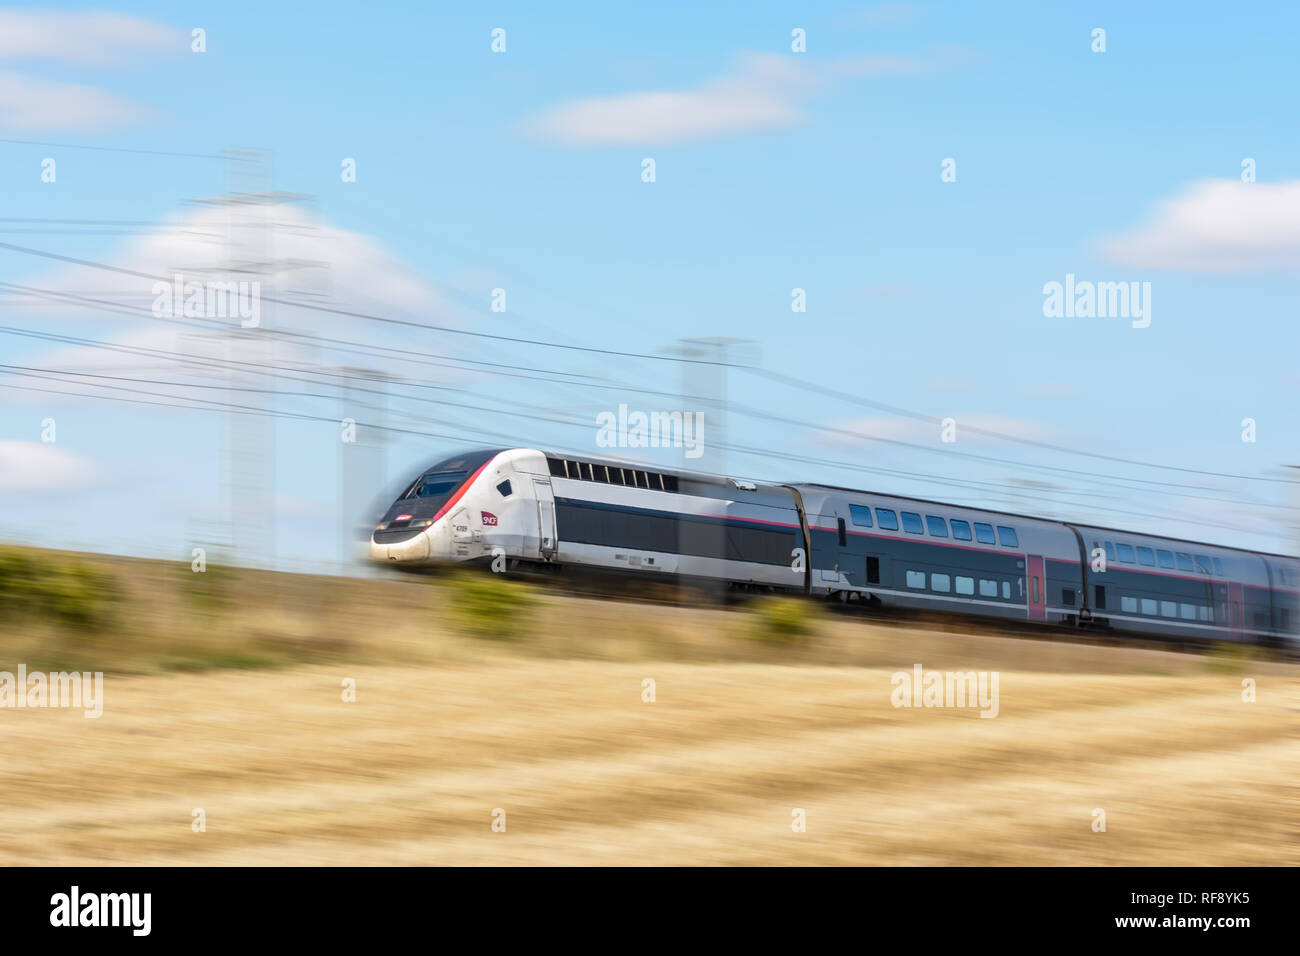 A TGV Duplex high-speed train in Carmillon livery from french company SNCF driving at full speed on the East European high-speed line. - Stock Image